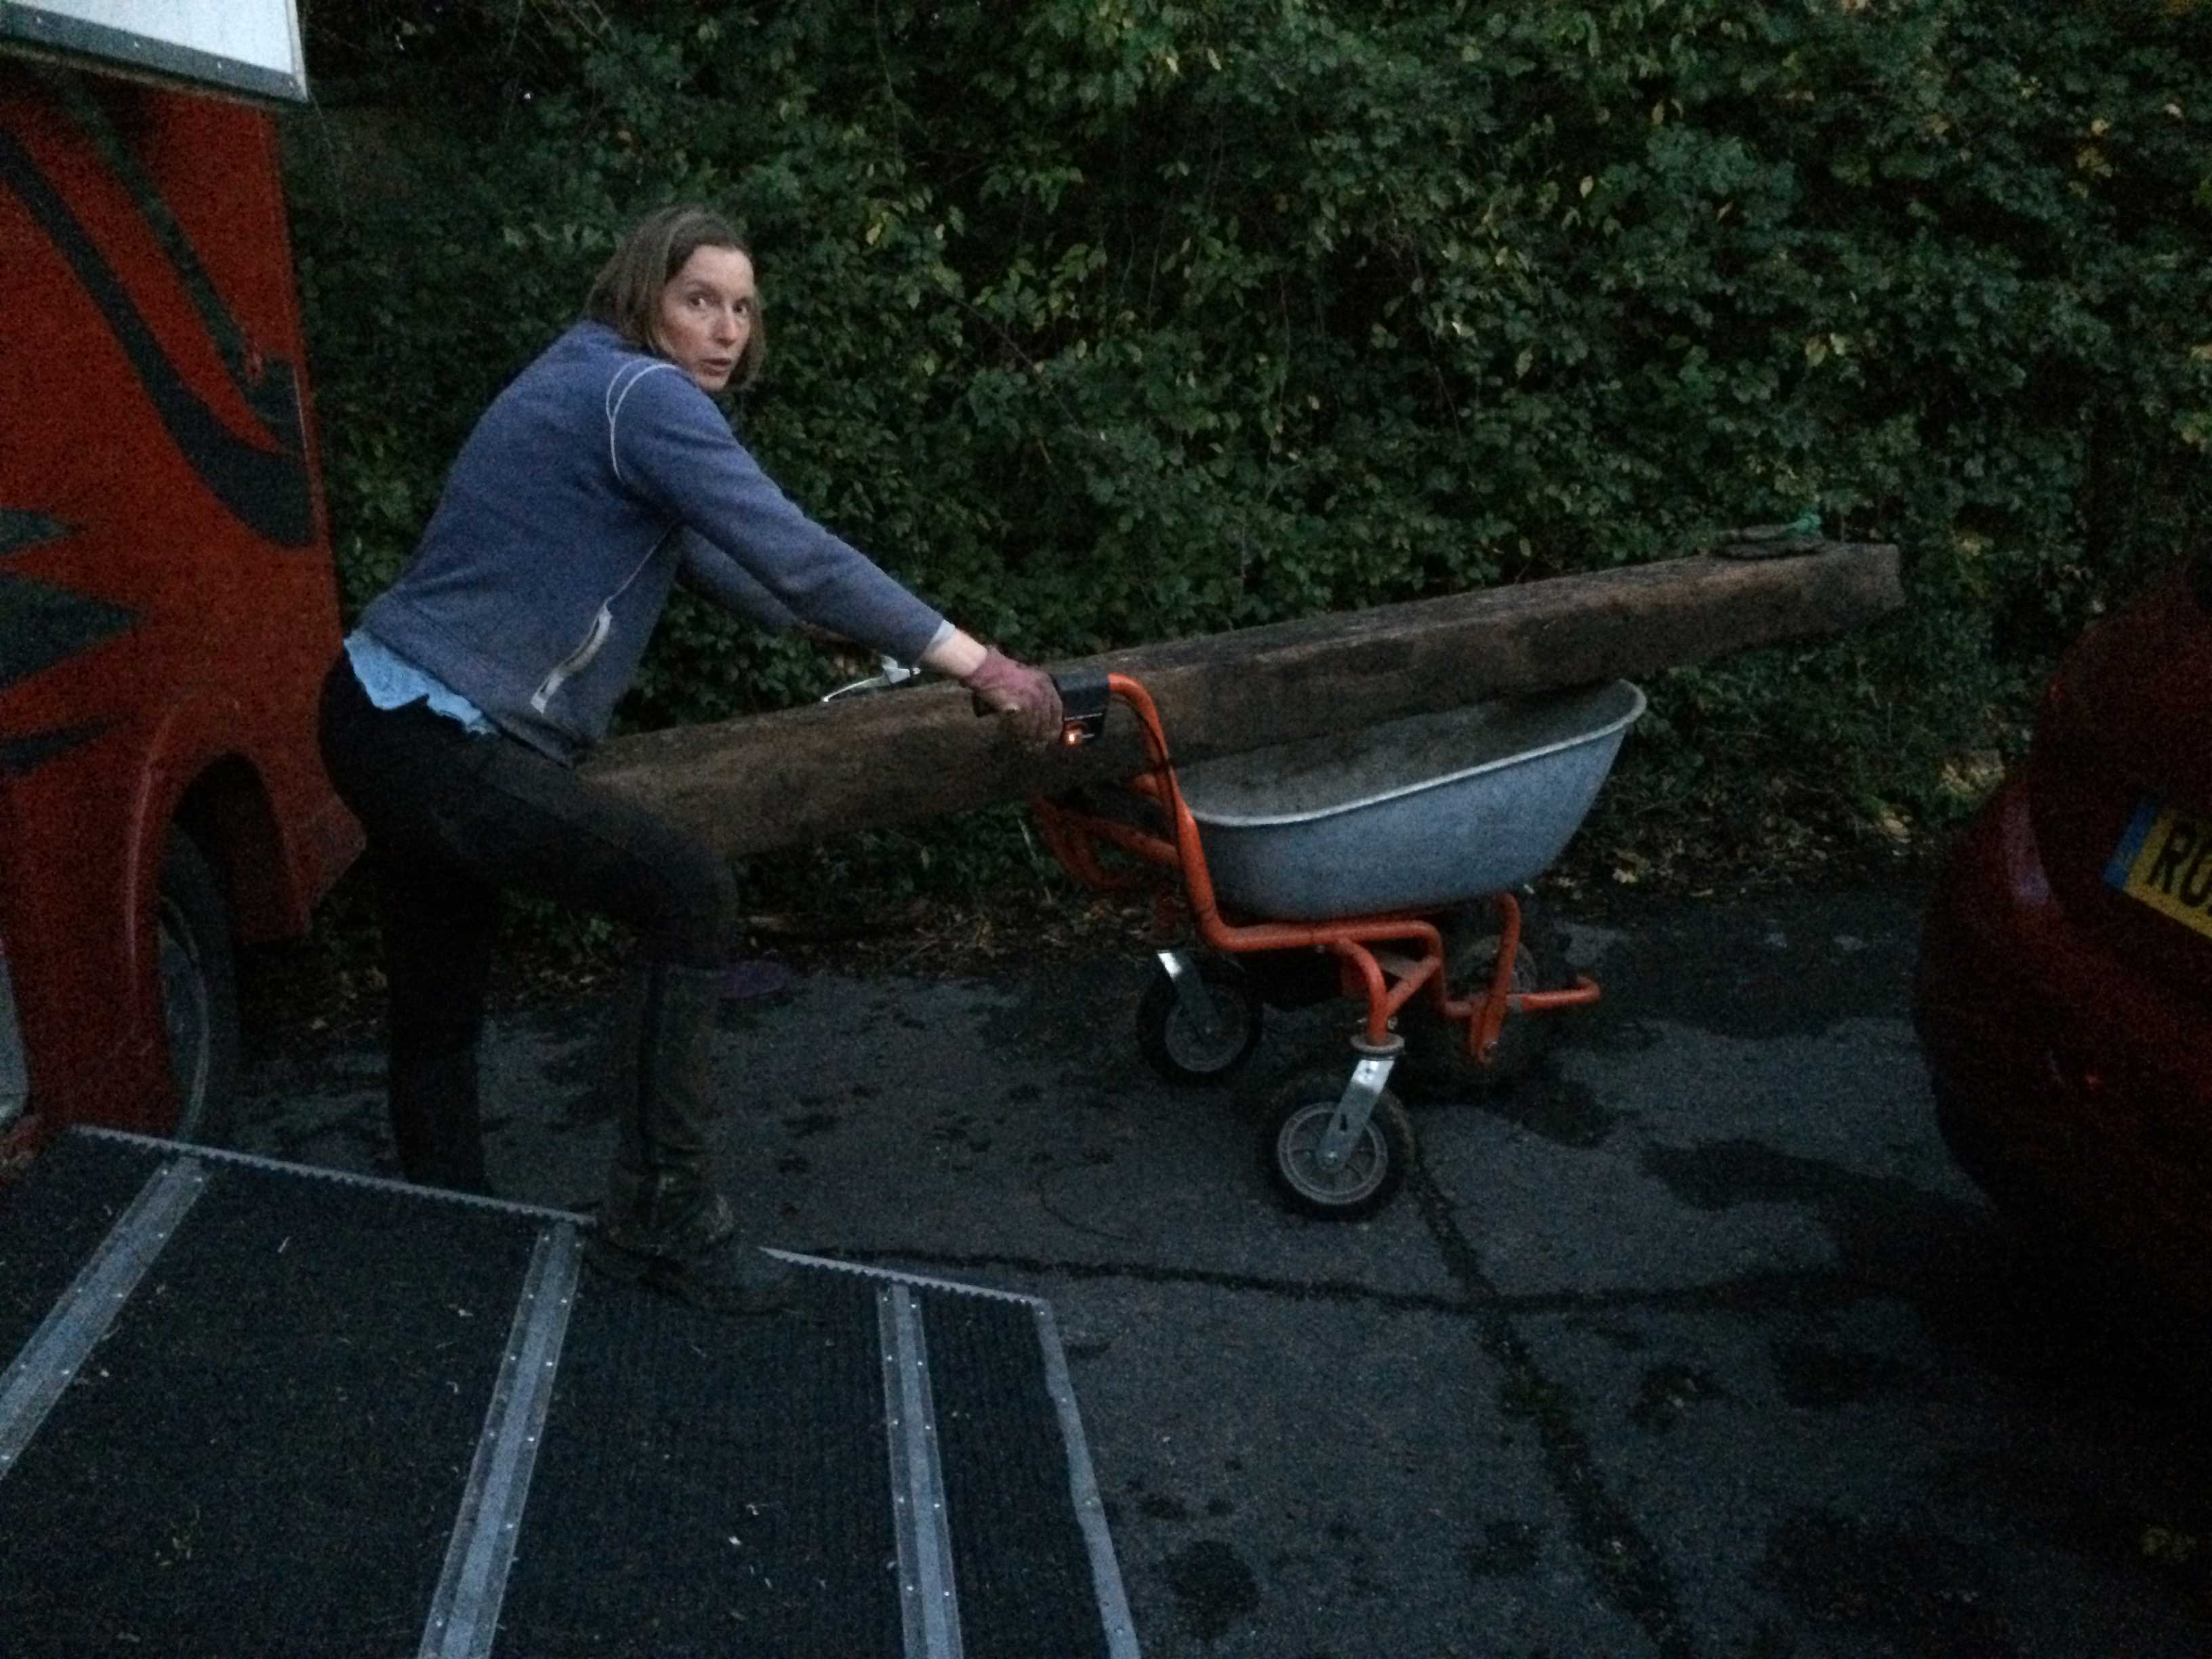 Wheelbarrow sleeper 2